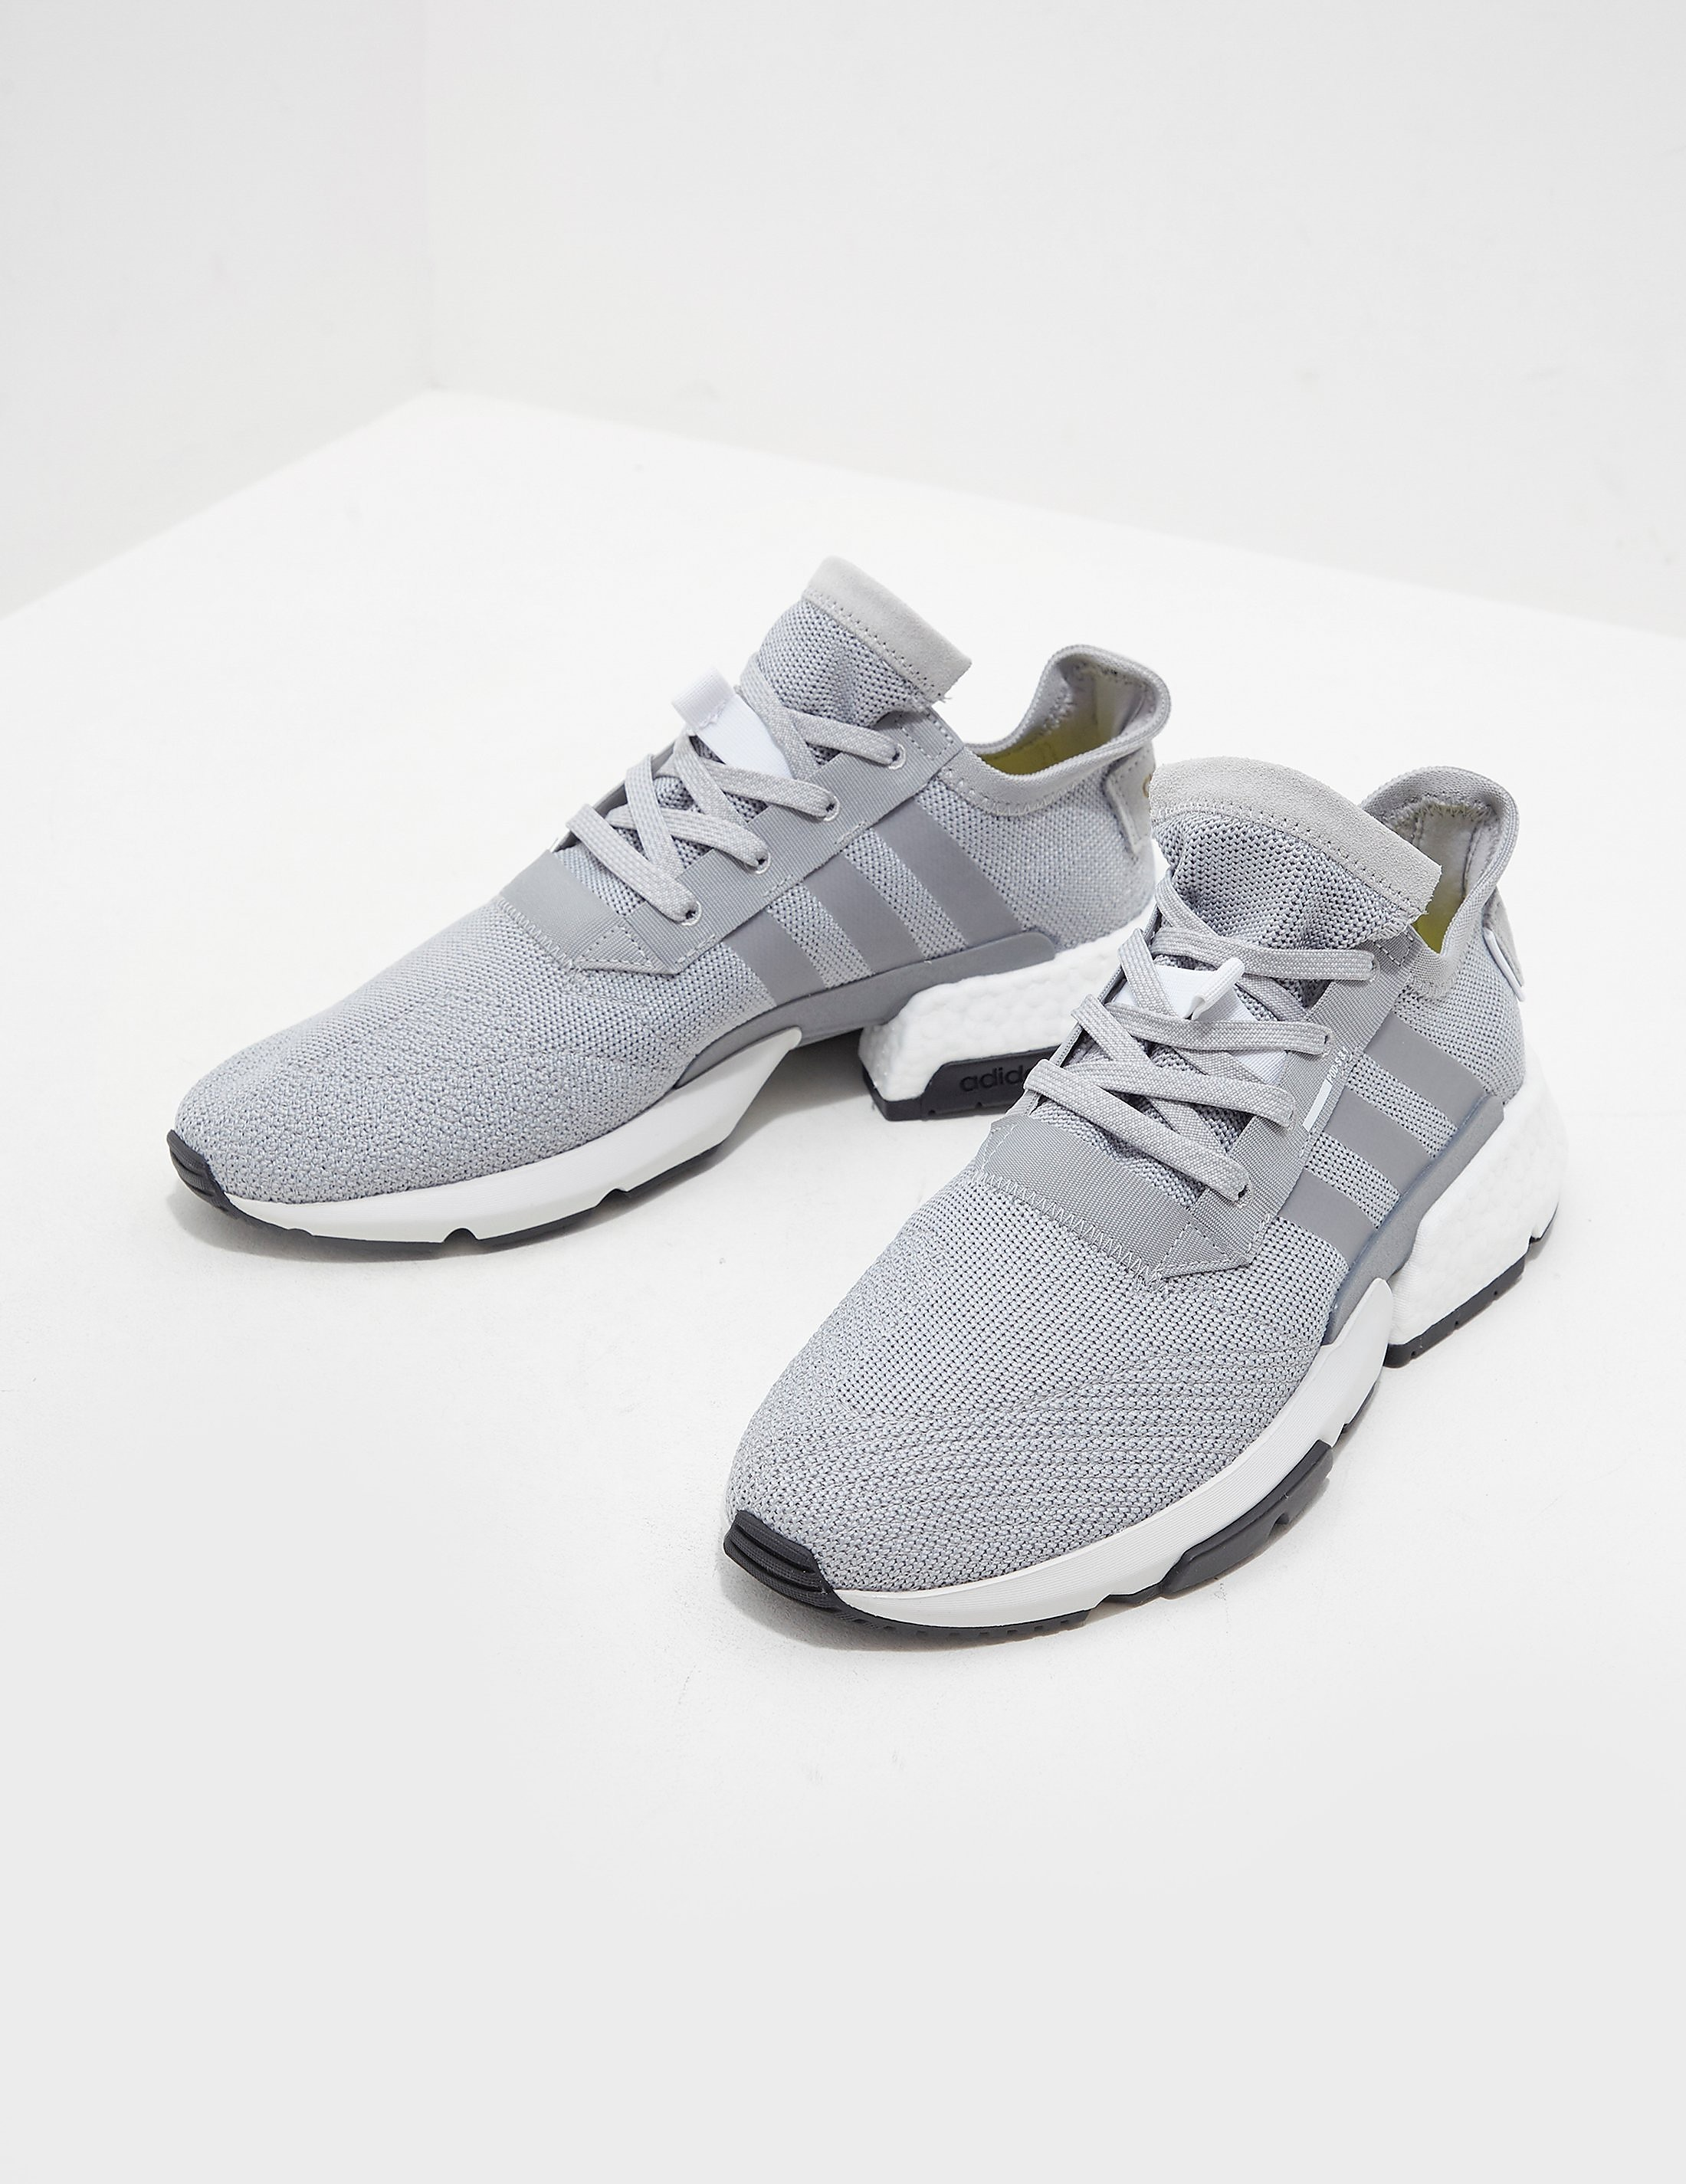 new arrivals 3ebd1 0a7ba Mens adidas Originals POD-S3.1 Grey, Grey